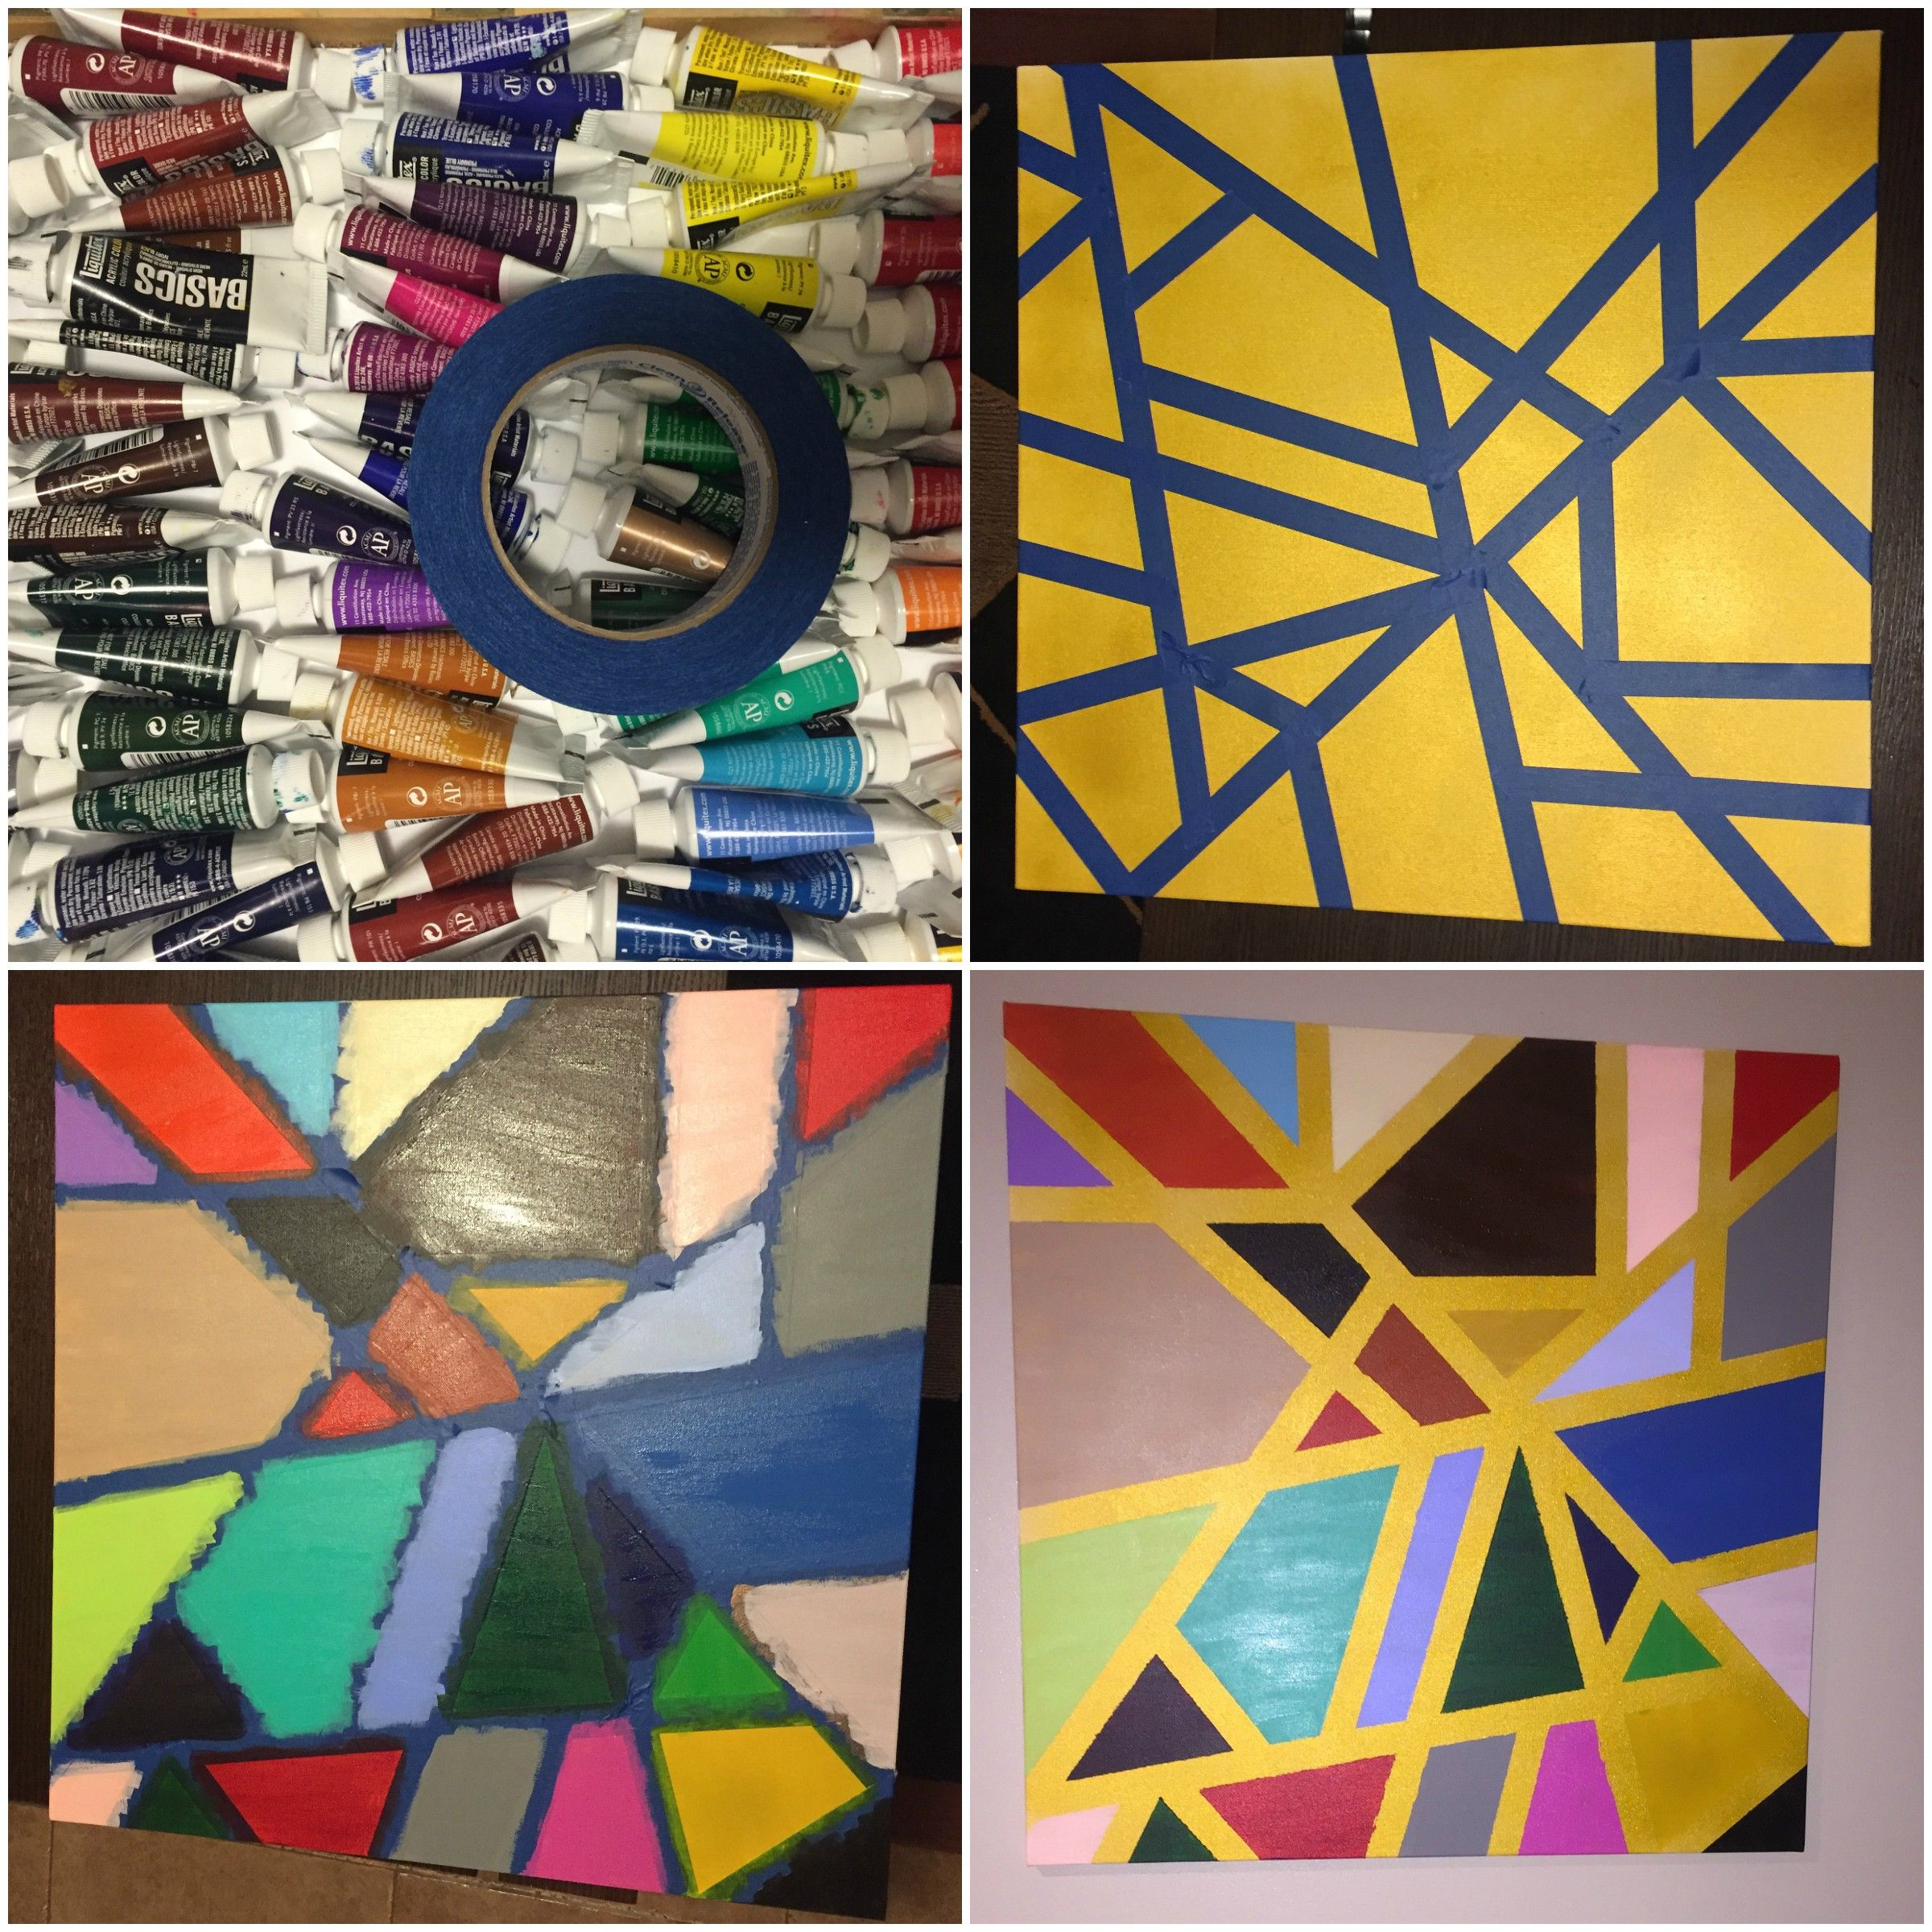 Paint Canvas Tape With Painters Tape Spray Paint Peel Off Tape Diy Art Diy Canvas Painting Diy Painting Projects